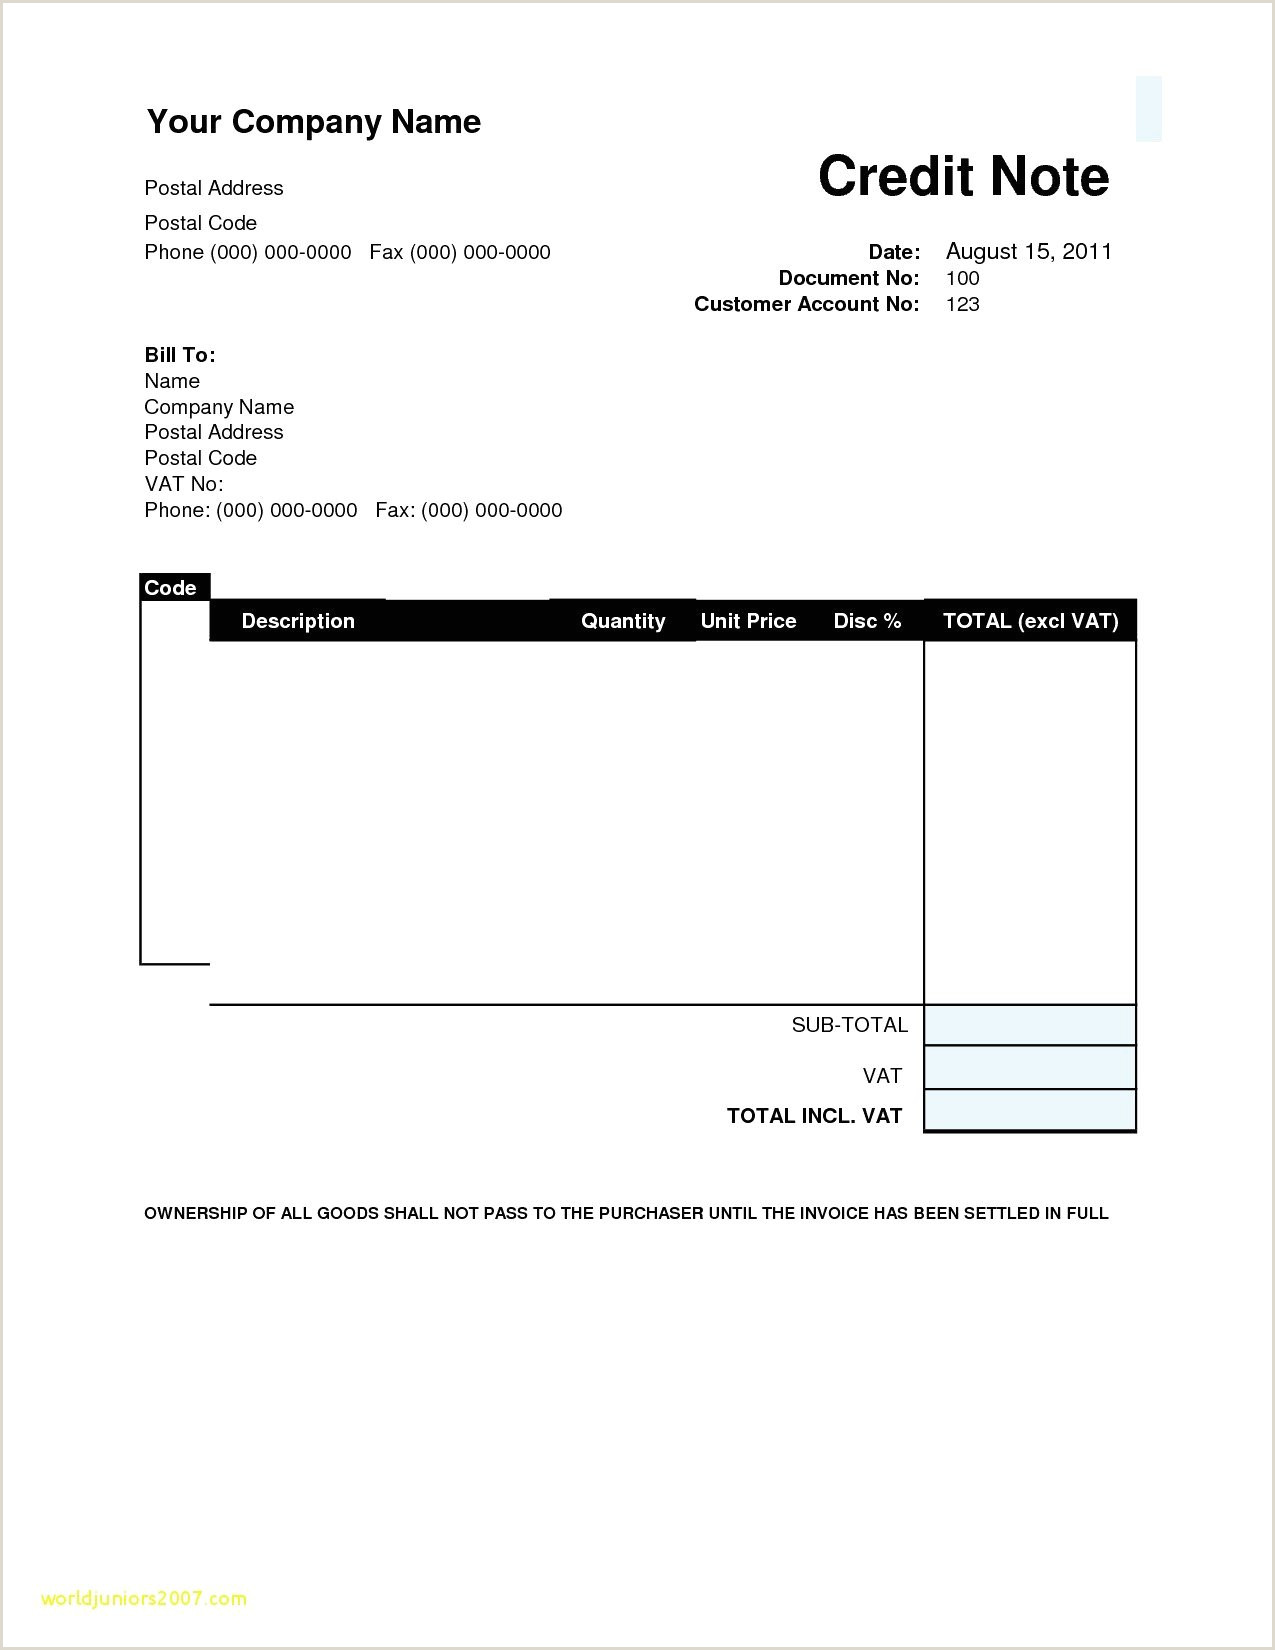 Business Card Information Police Department Business Card Templates